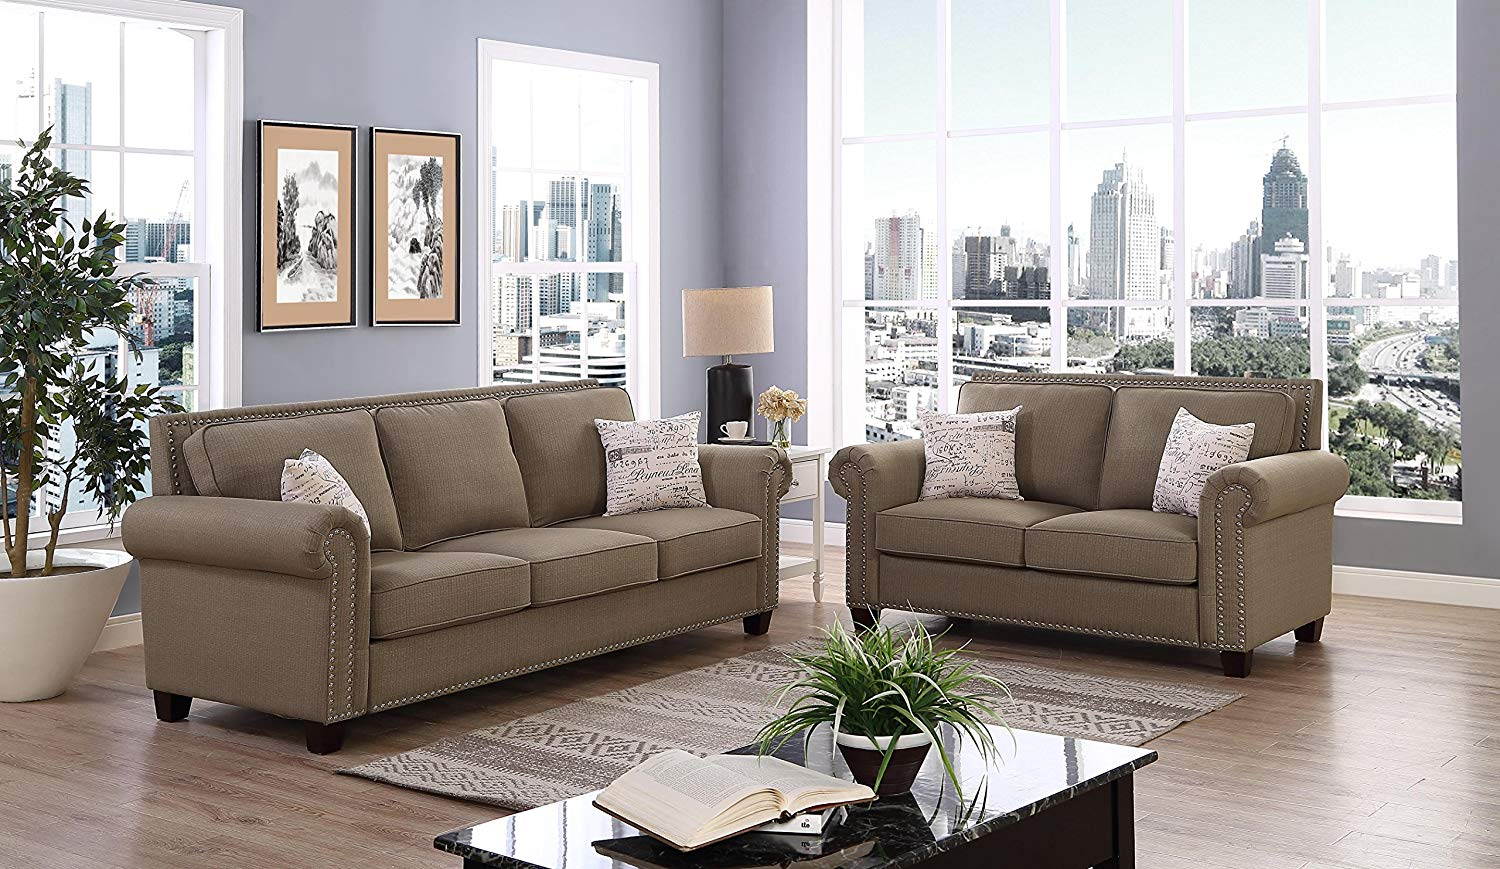 Get Quotations · Linen Fabric Tufted Nailhead Trim Chesterfield Inspired  Design With Removable Cushion Loveseat, Sofa Set,